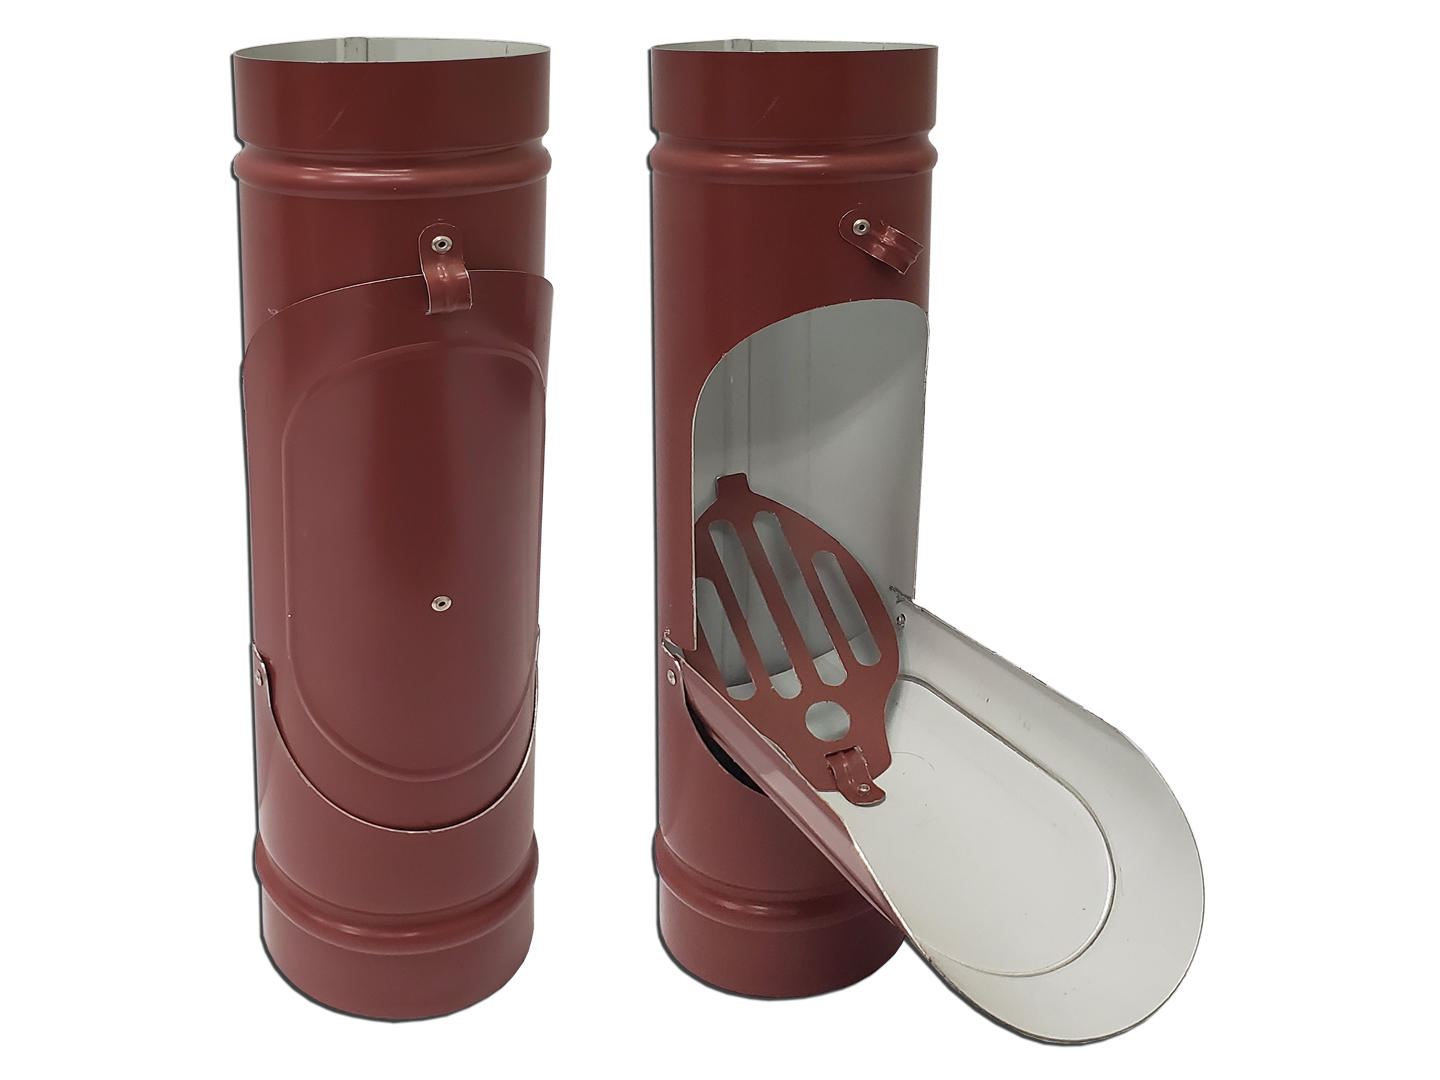 Plain round kynar steel colonial red downspout cleanout for leaves